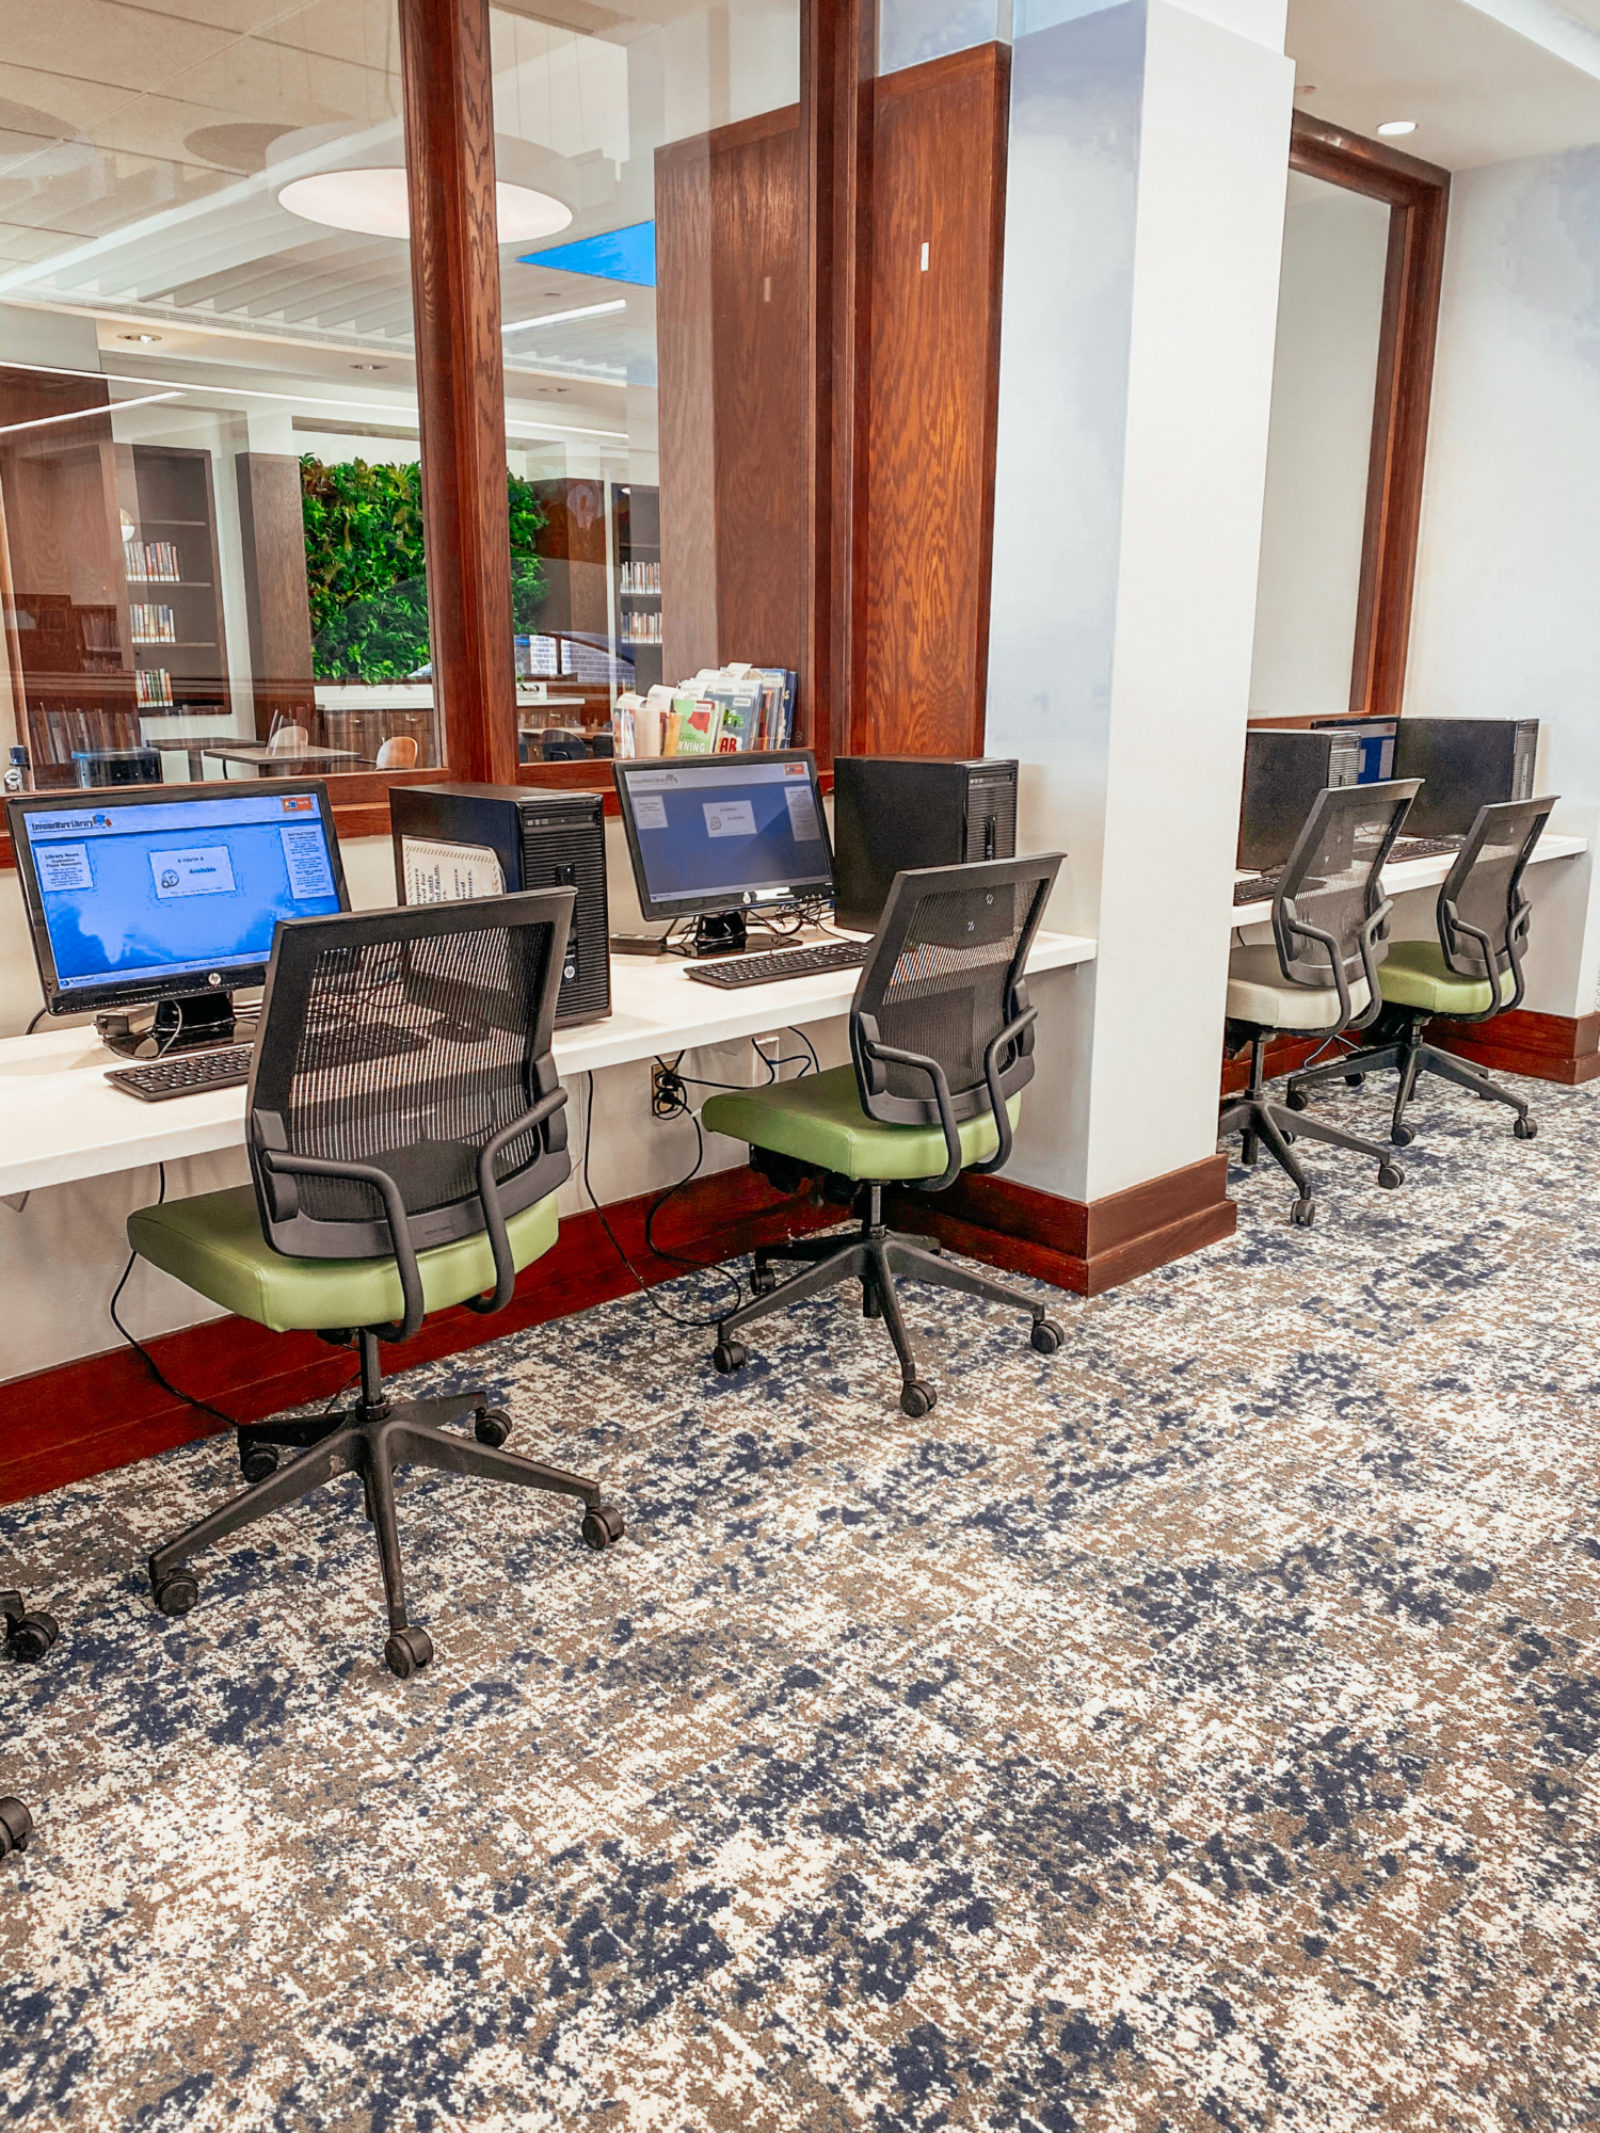 An image of the computer stations in the children's section with black task chairs that have green seats lined up in front of a ledge with computers.